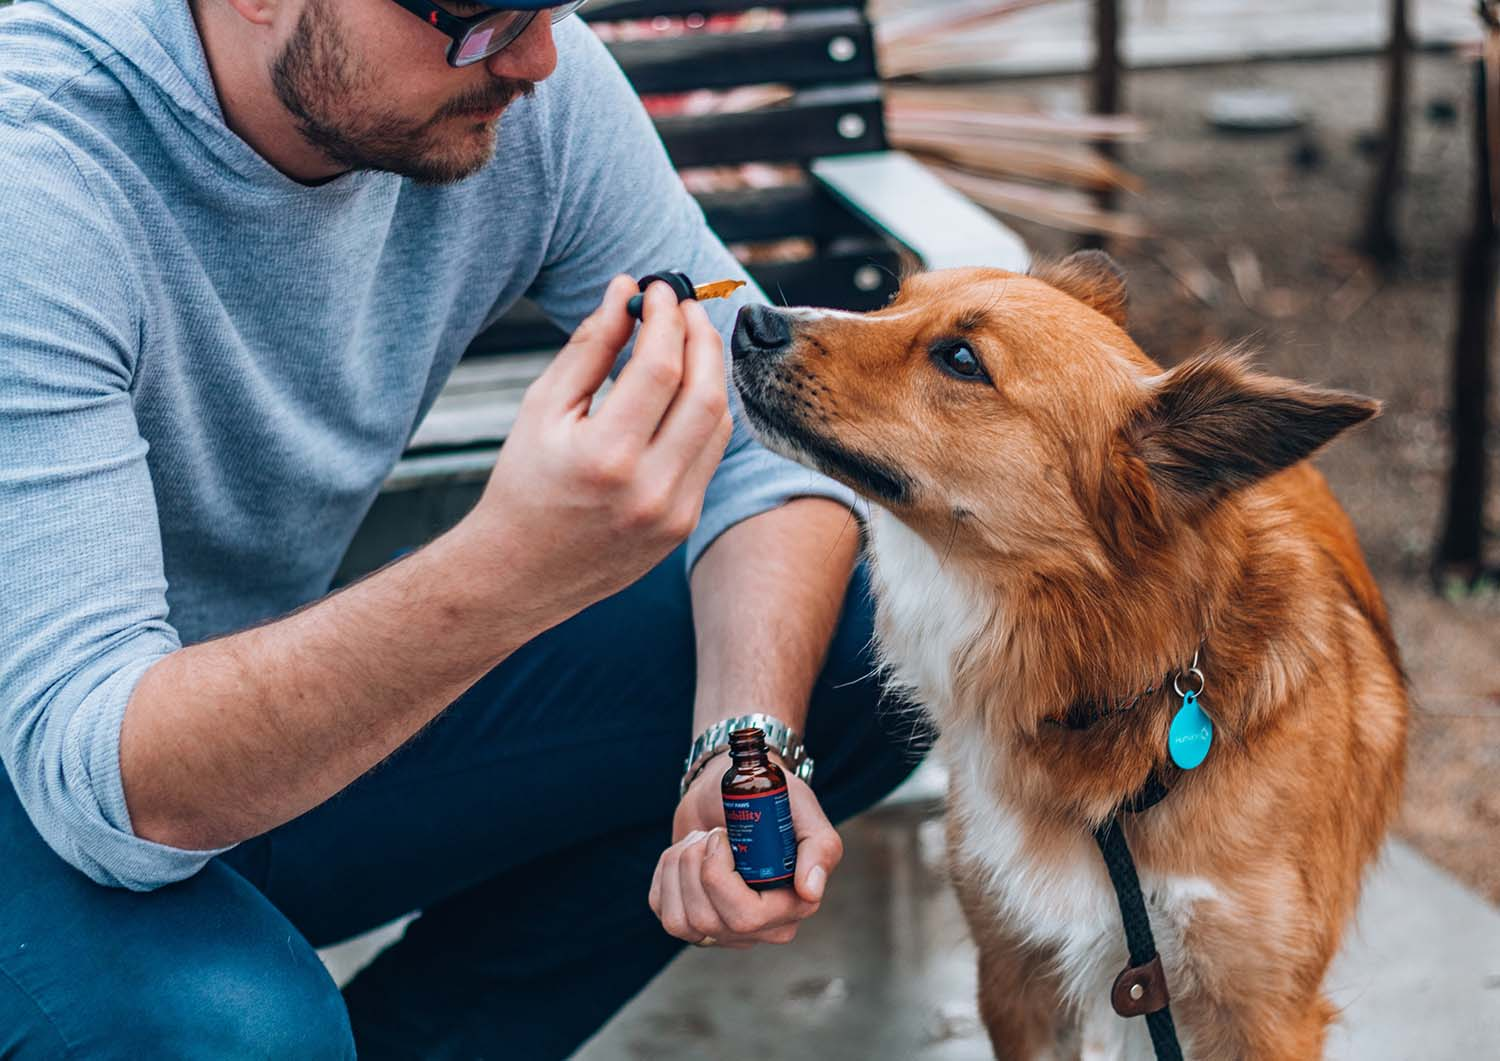 Does CBD Really Help Dogs and Cats? Pet Owners Using CBD